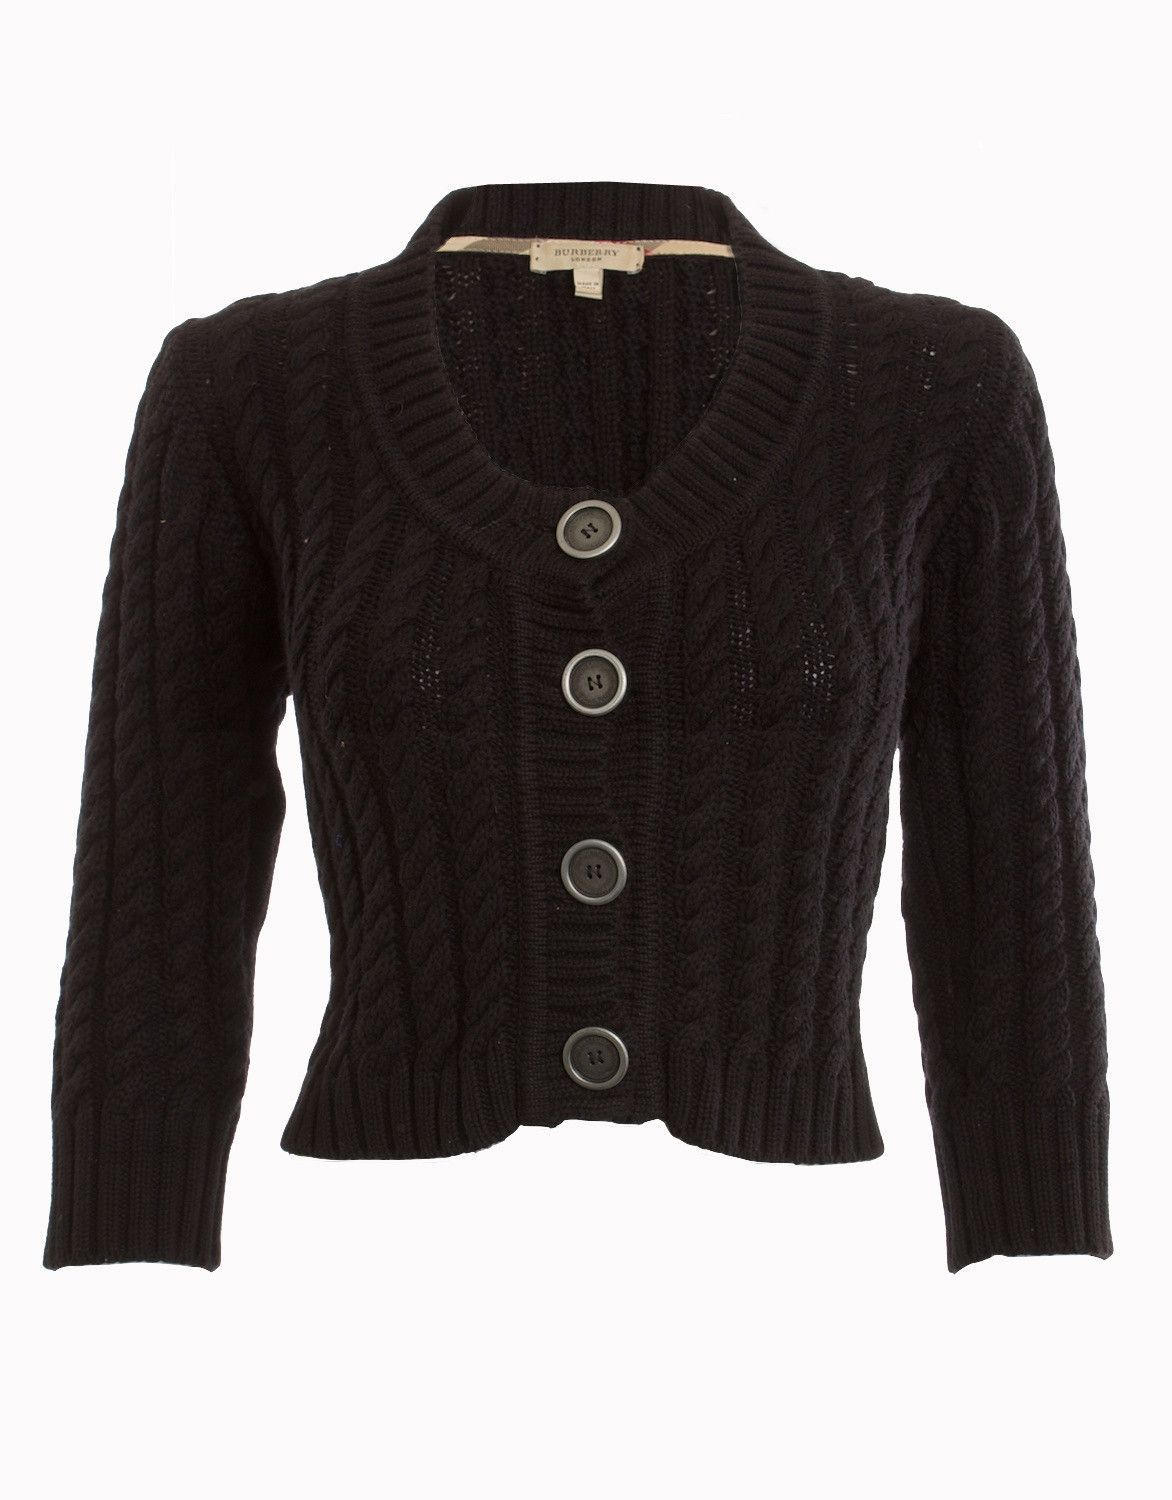 BURBERRY LONDON Black Cable Knit Cropped Cardigan Sweater Size ...